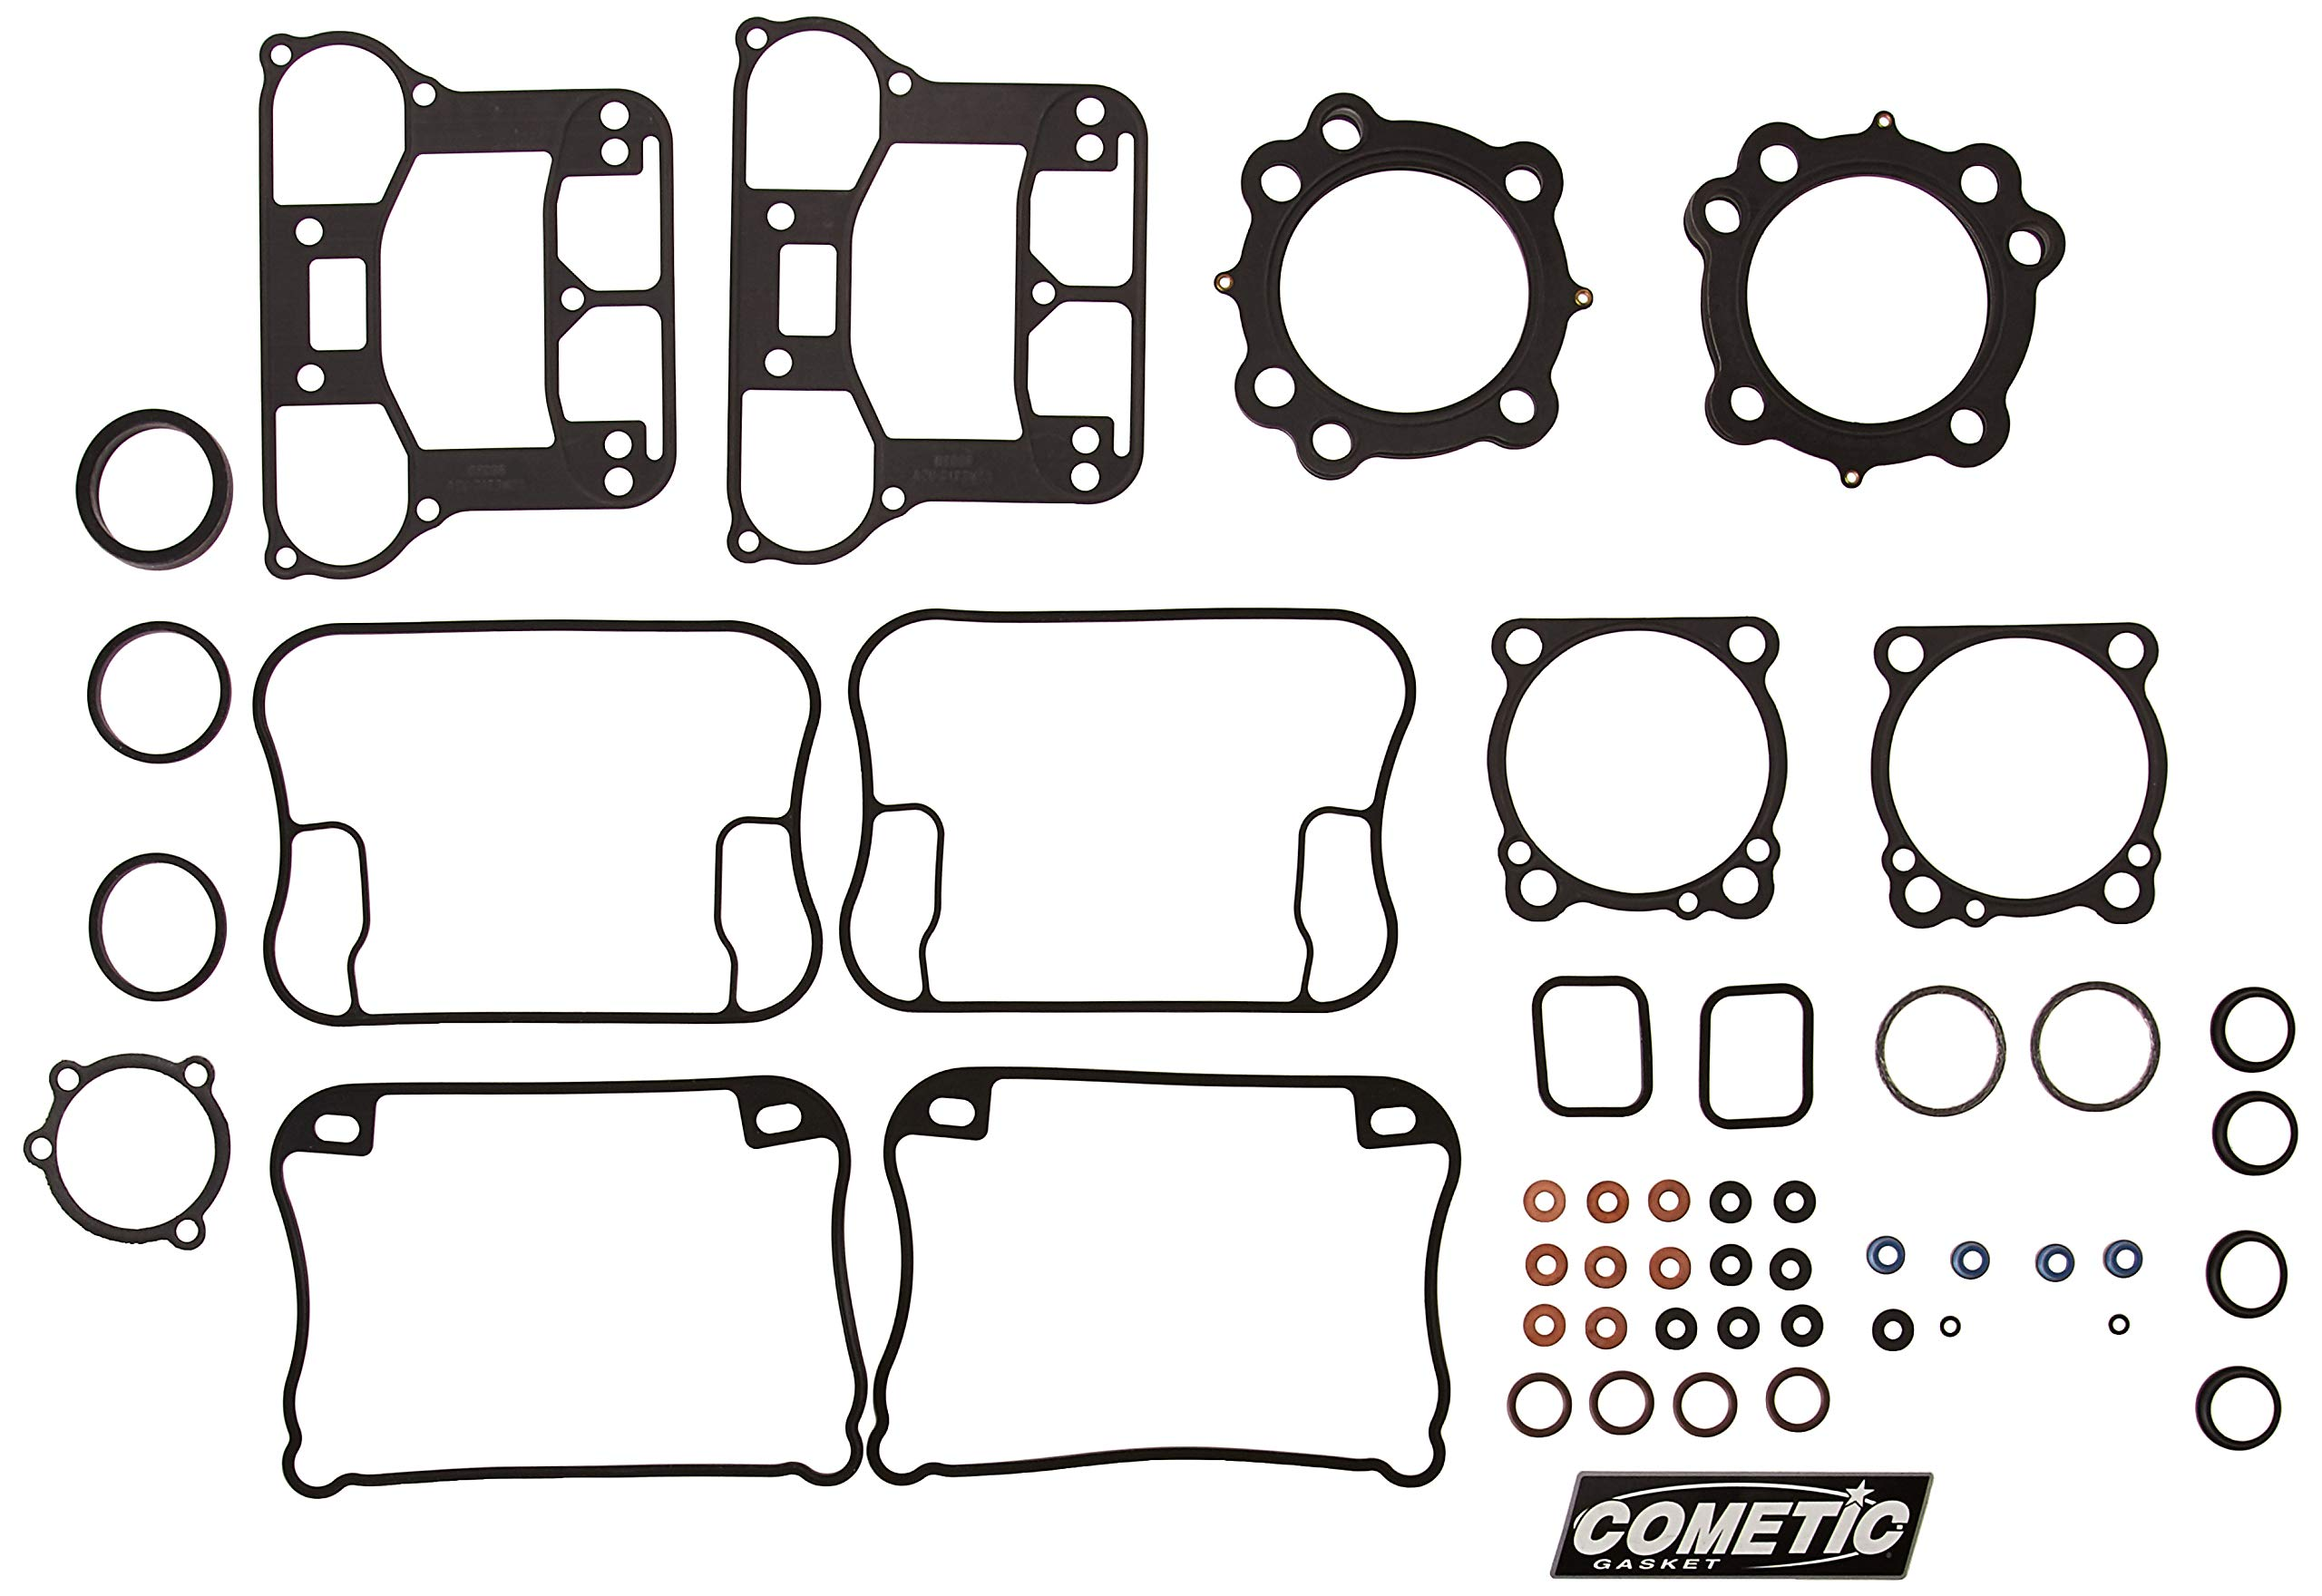 Cometic C9763 Top End Gasket Kit by Cometic Gasket